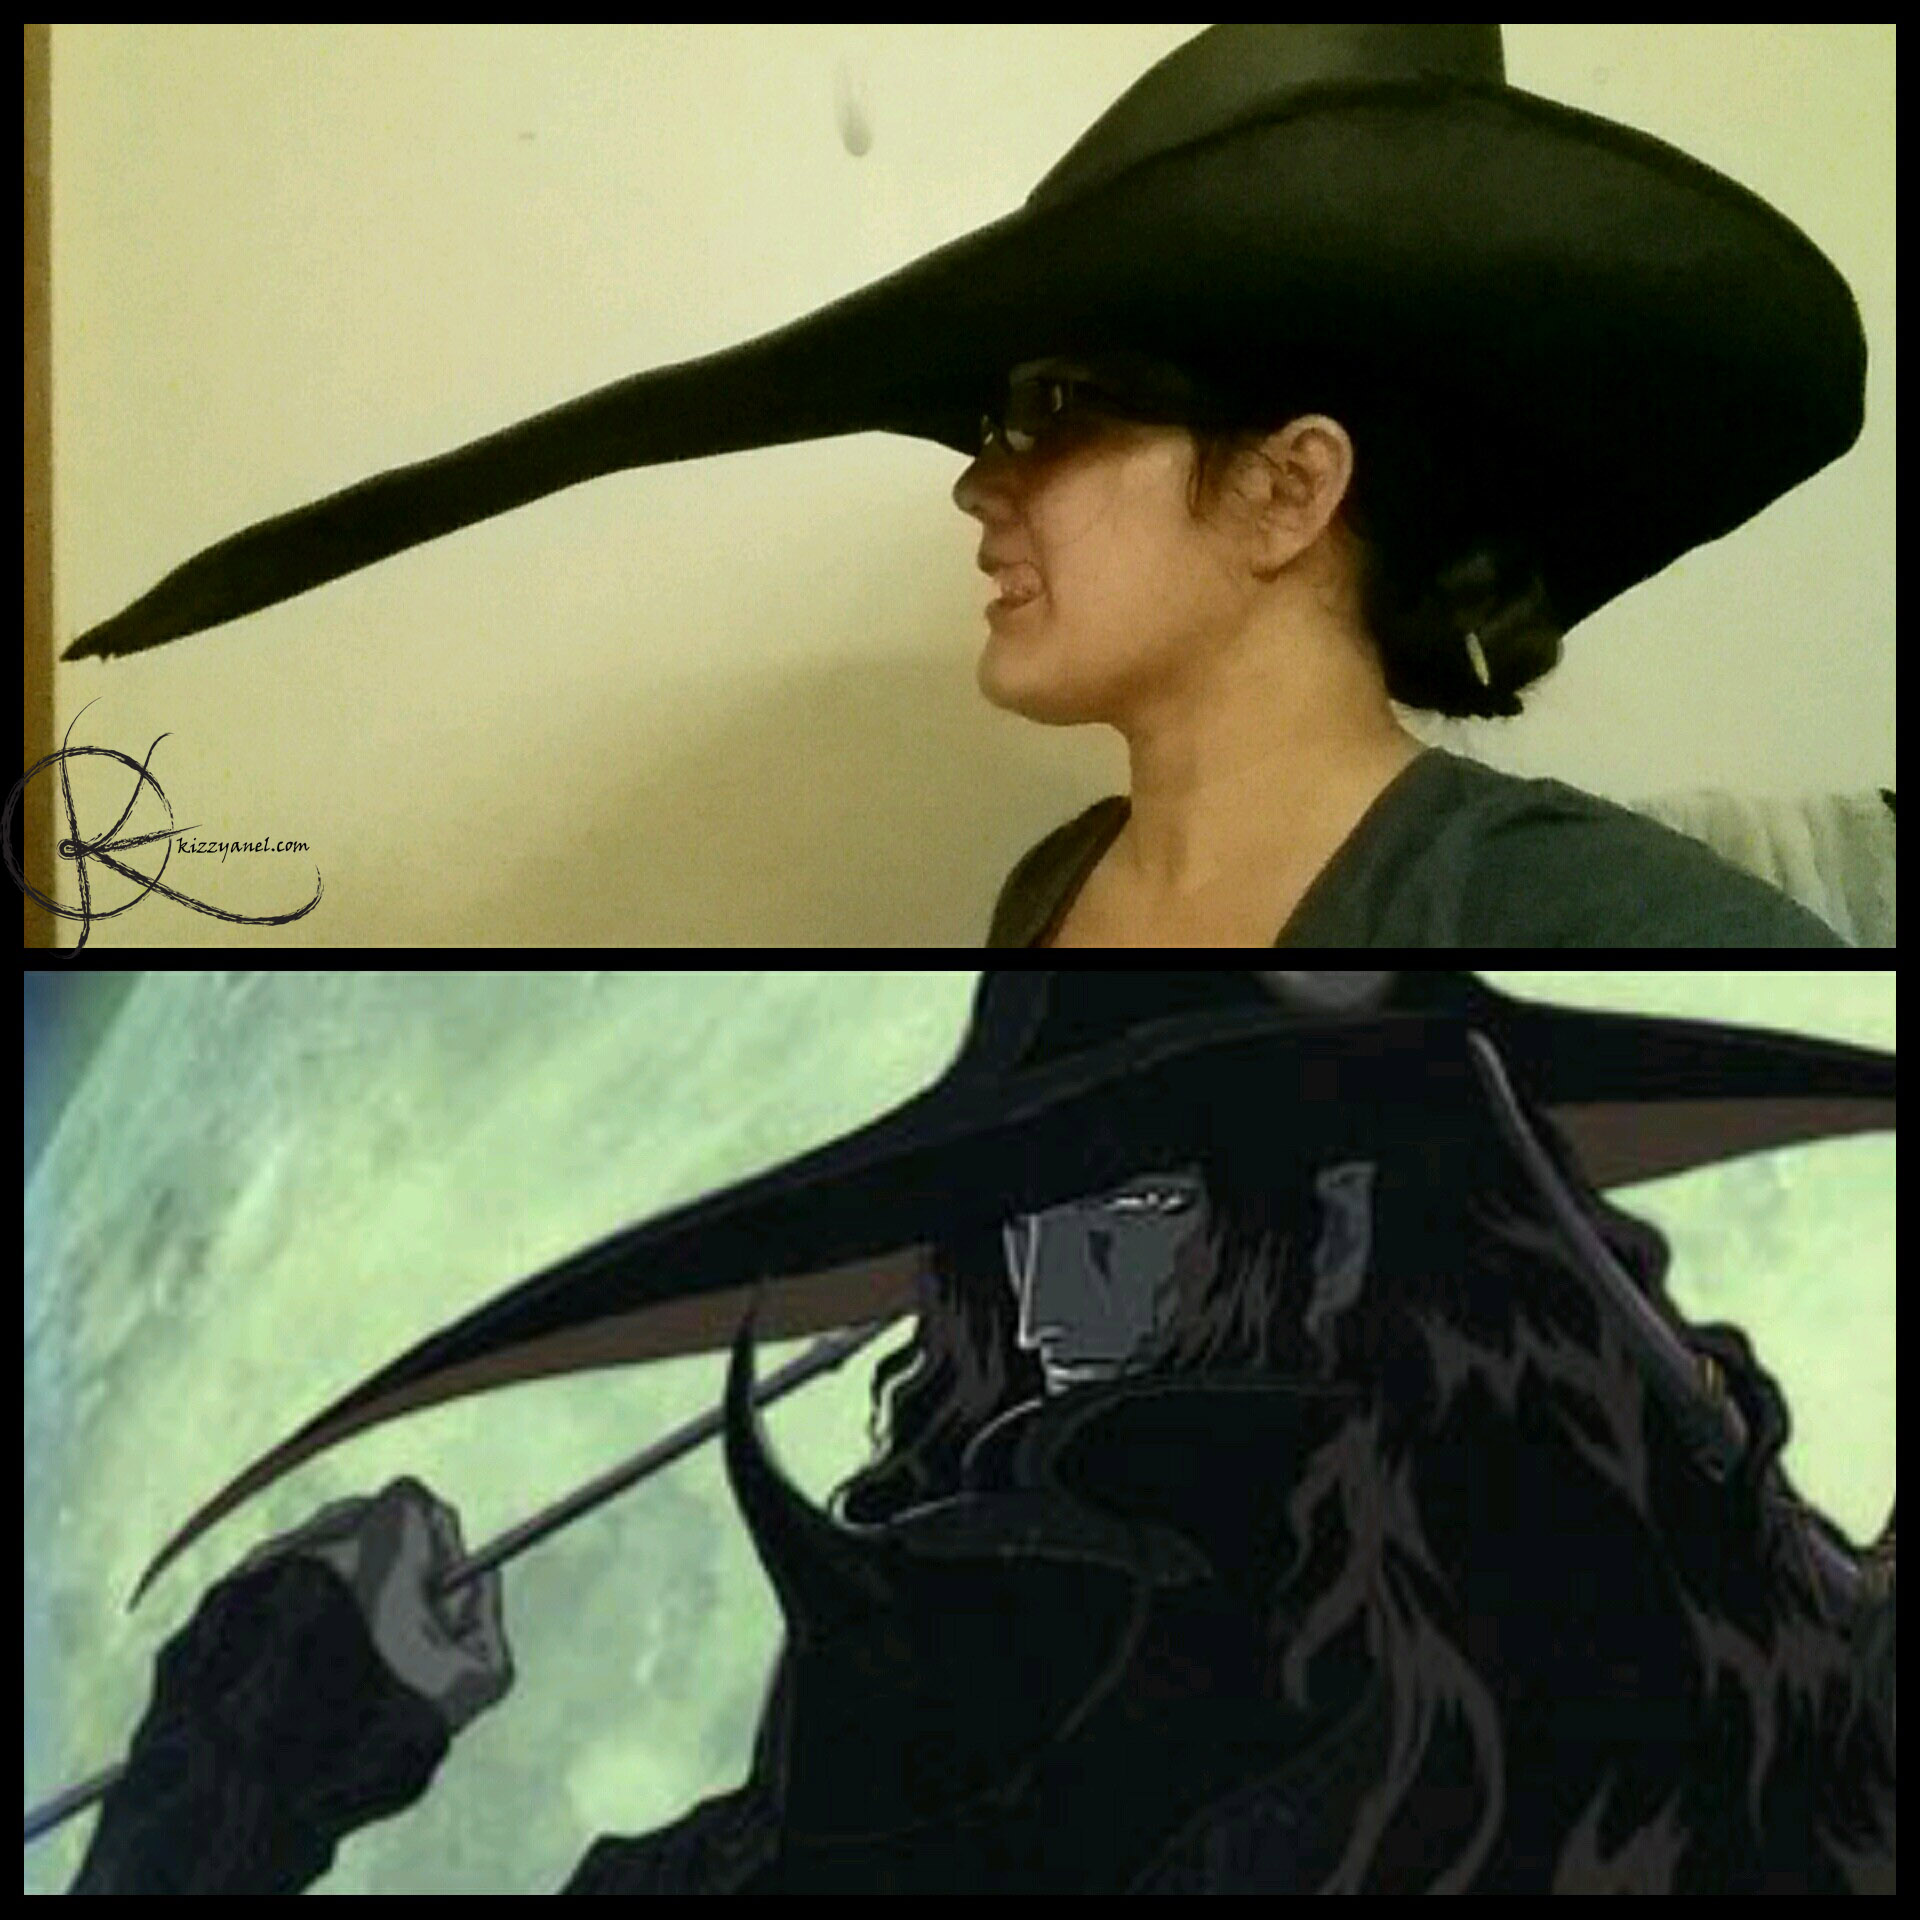 Hat vs Reference